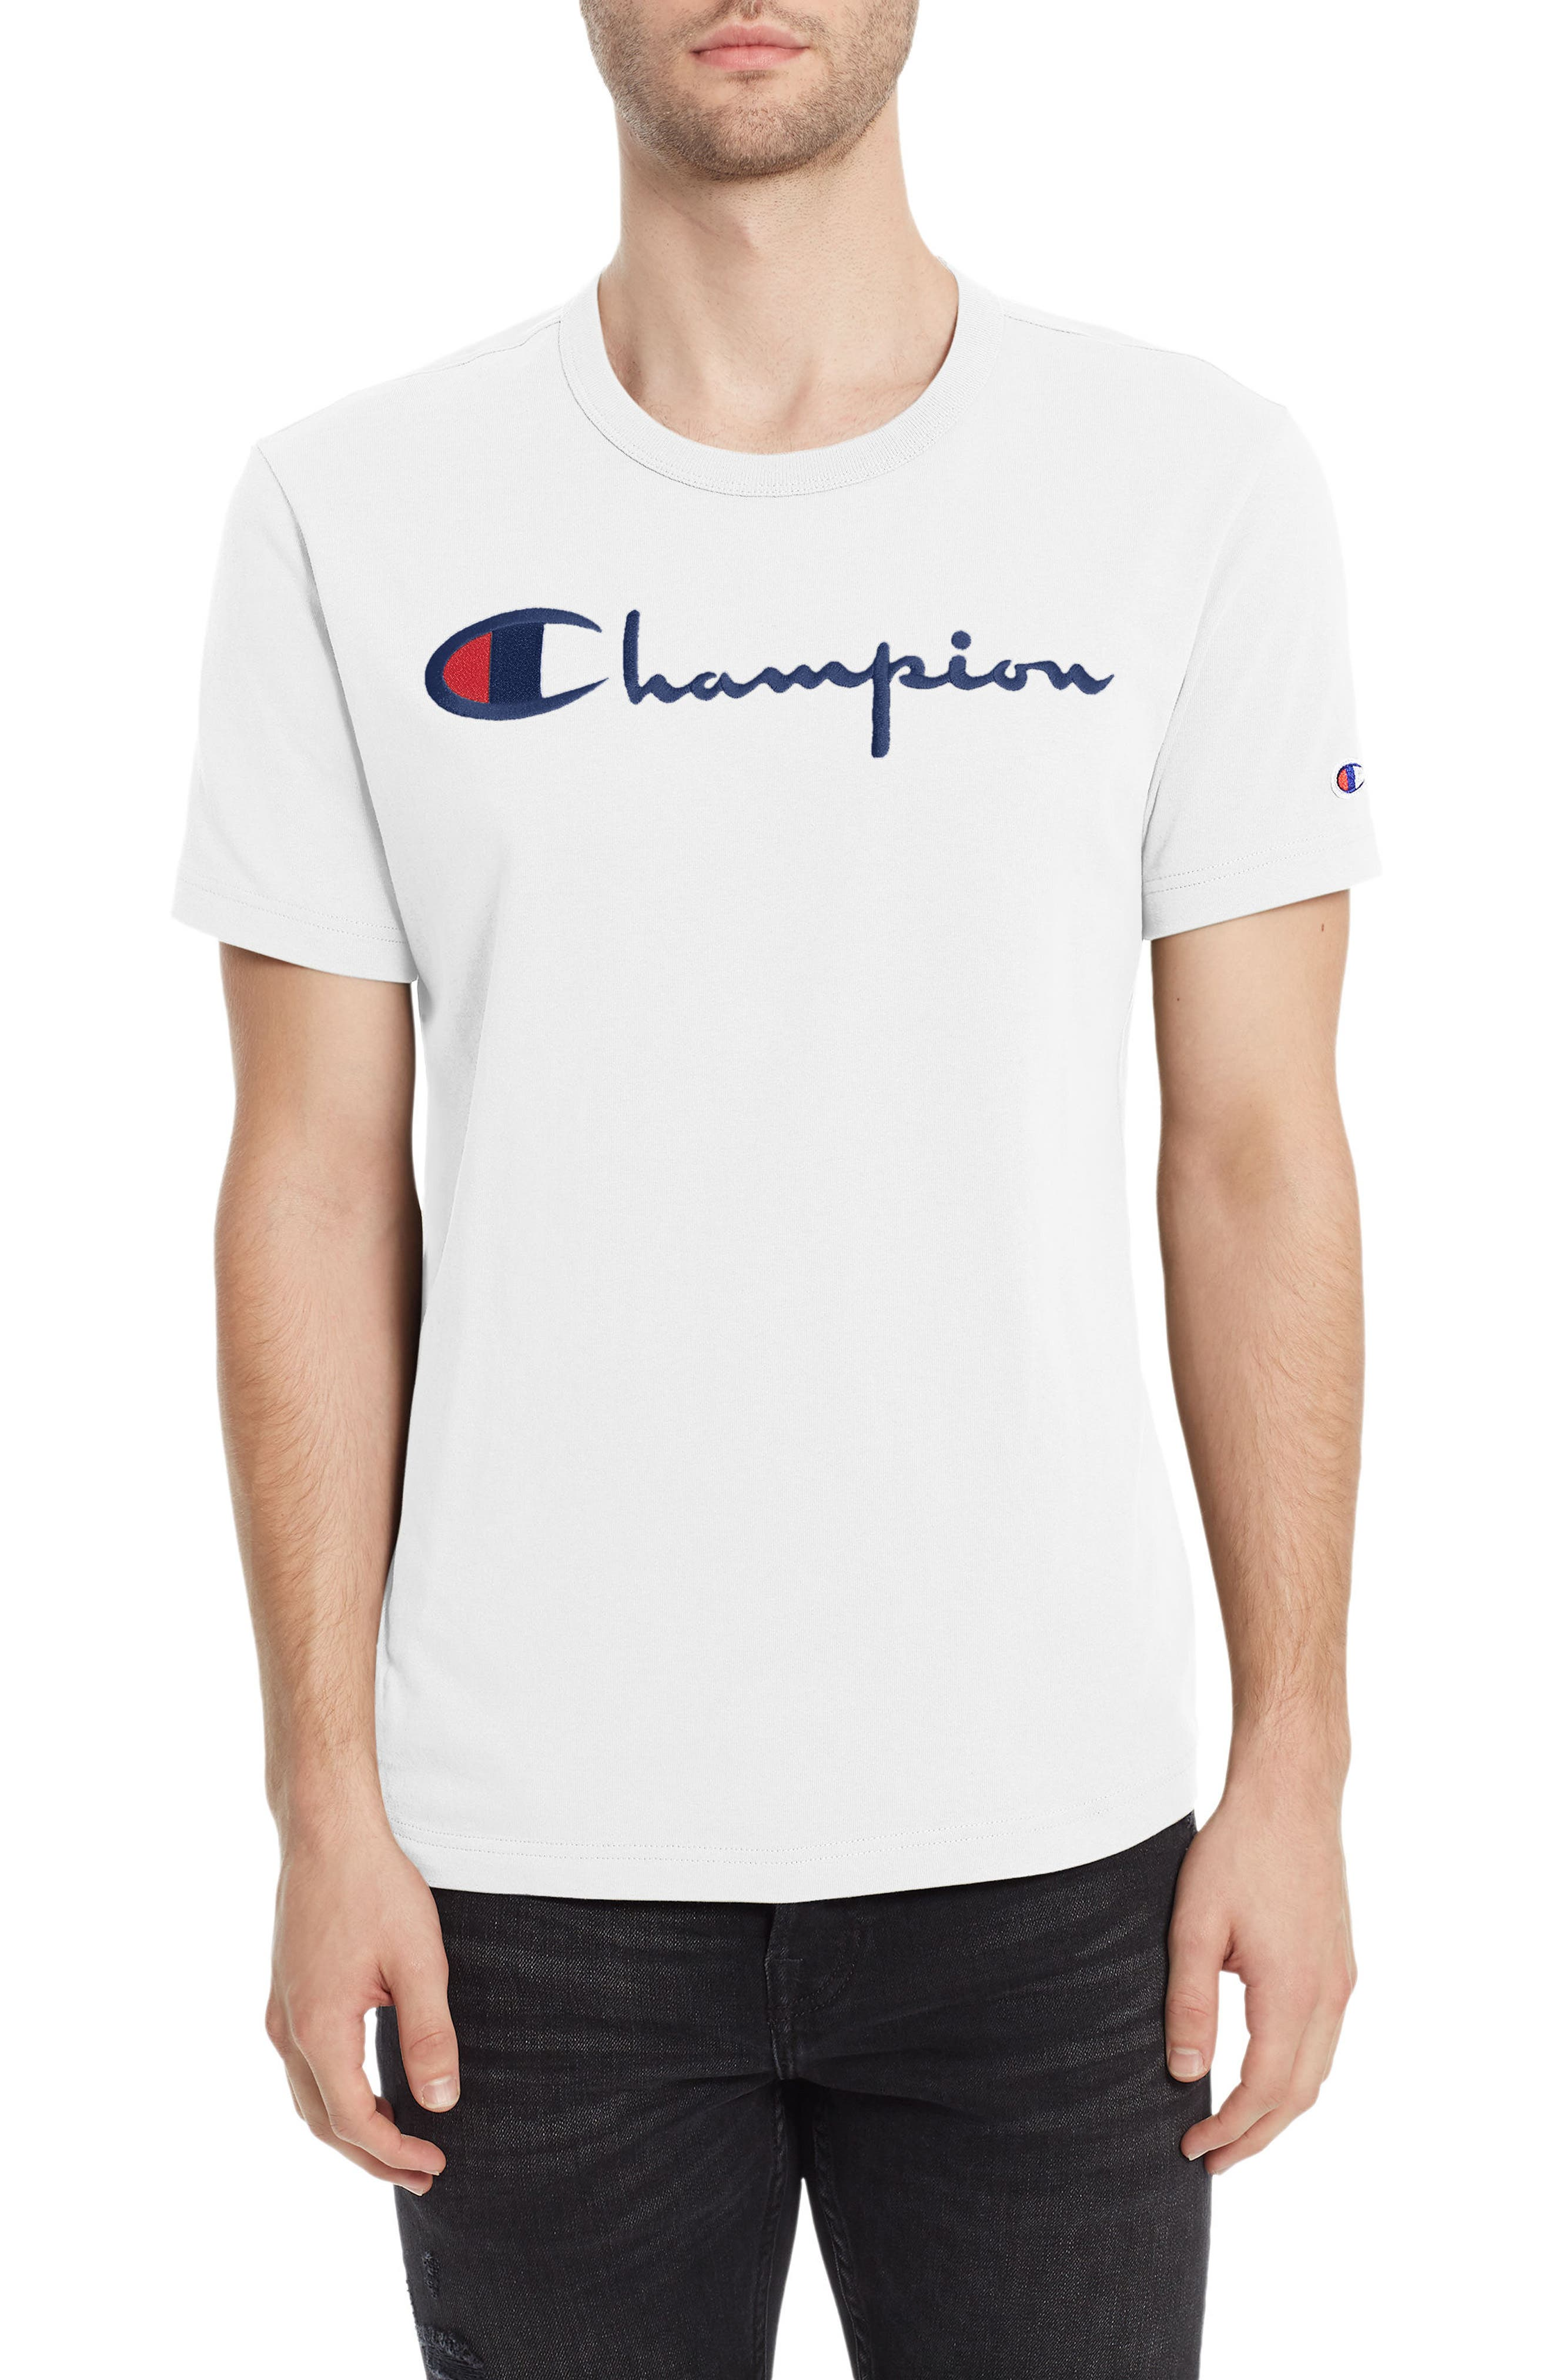 Men's White T-Shirts & Graphic Tees | Nordstrom